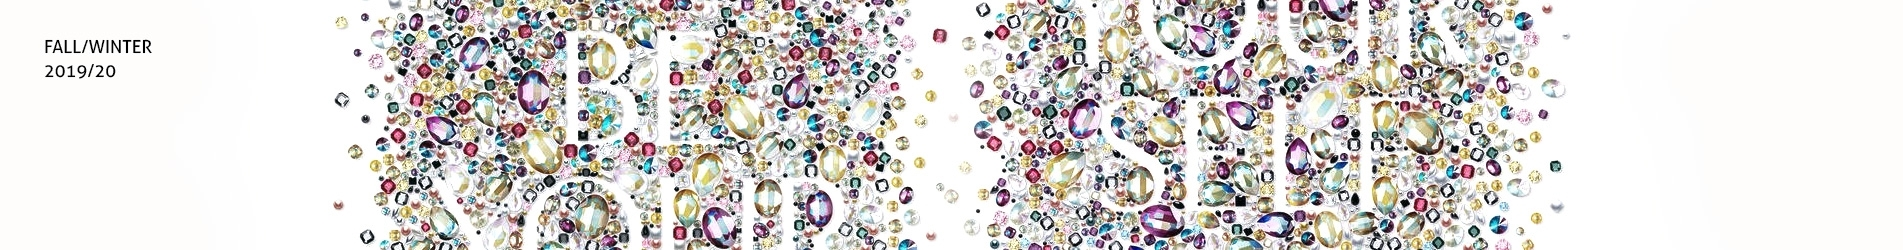 Swarovski Innovations Fall/Winter 2019/20